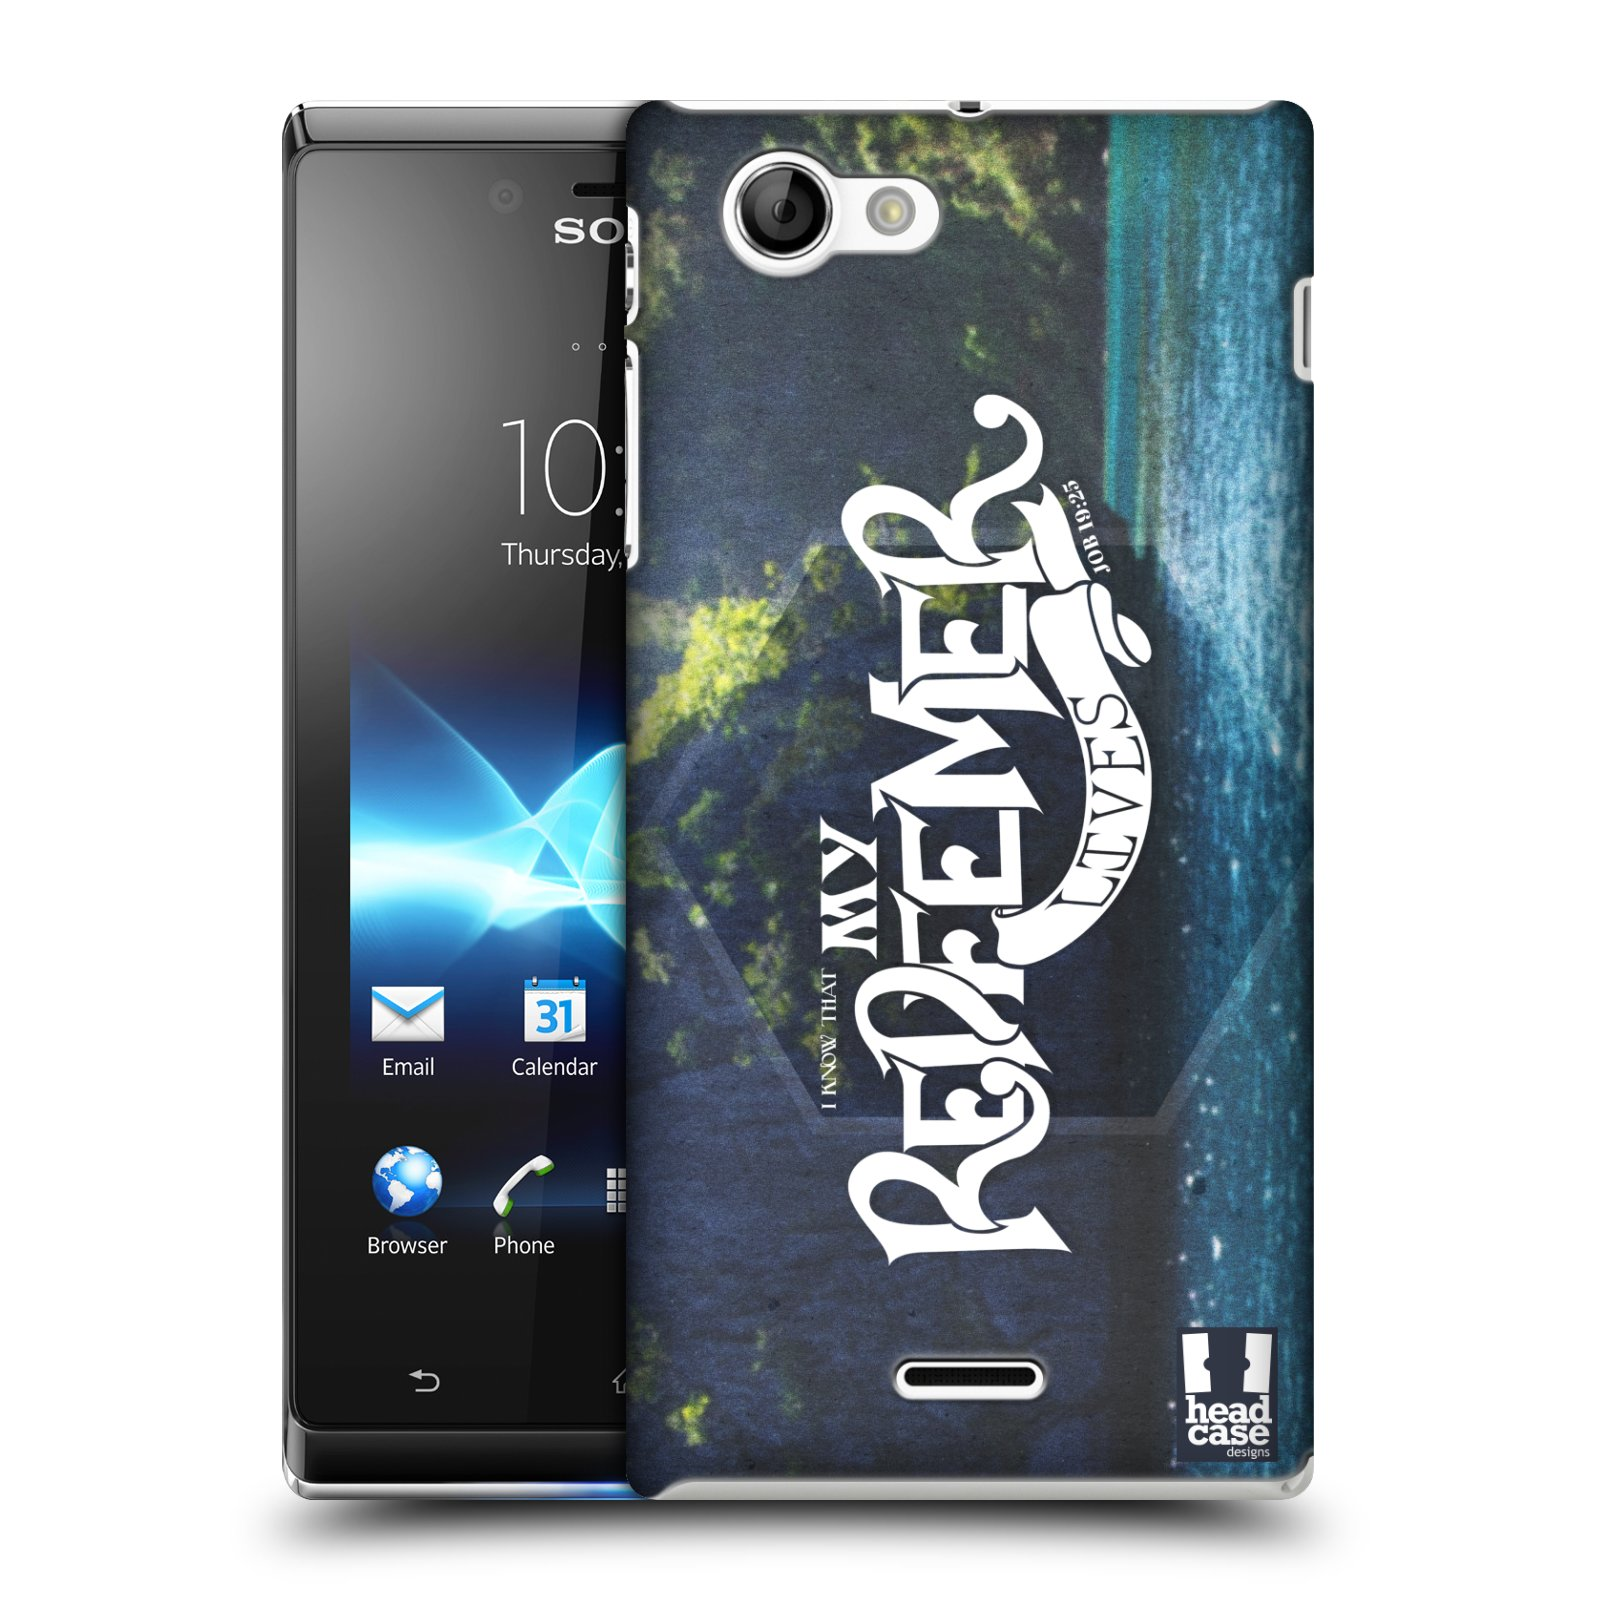 HEAD CASE DESIGNS CHRISTIAN TYPOGRAPHY SERIES 3 CASE FOR SONY XPERIA J ST26i